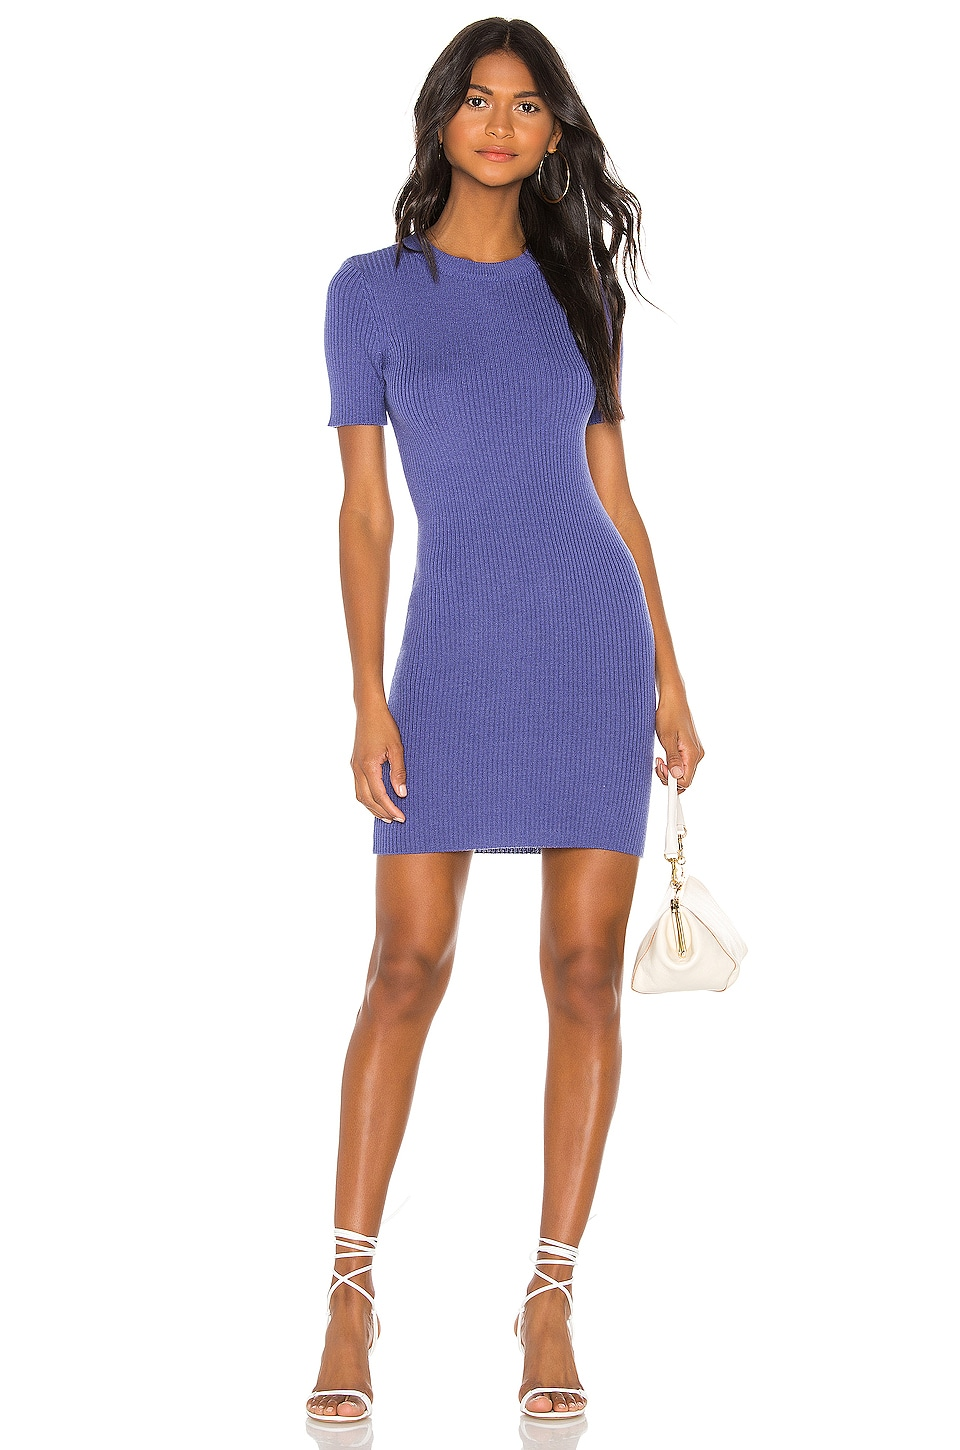 House of Harlow 1960 X REVOLVE Ava Dress in Cobalt Blue